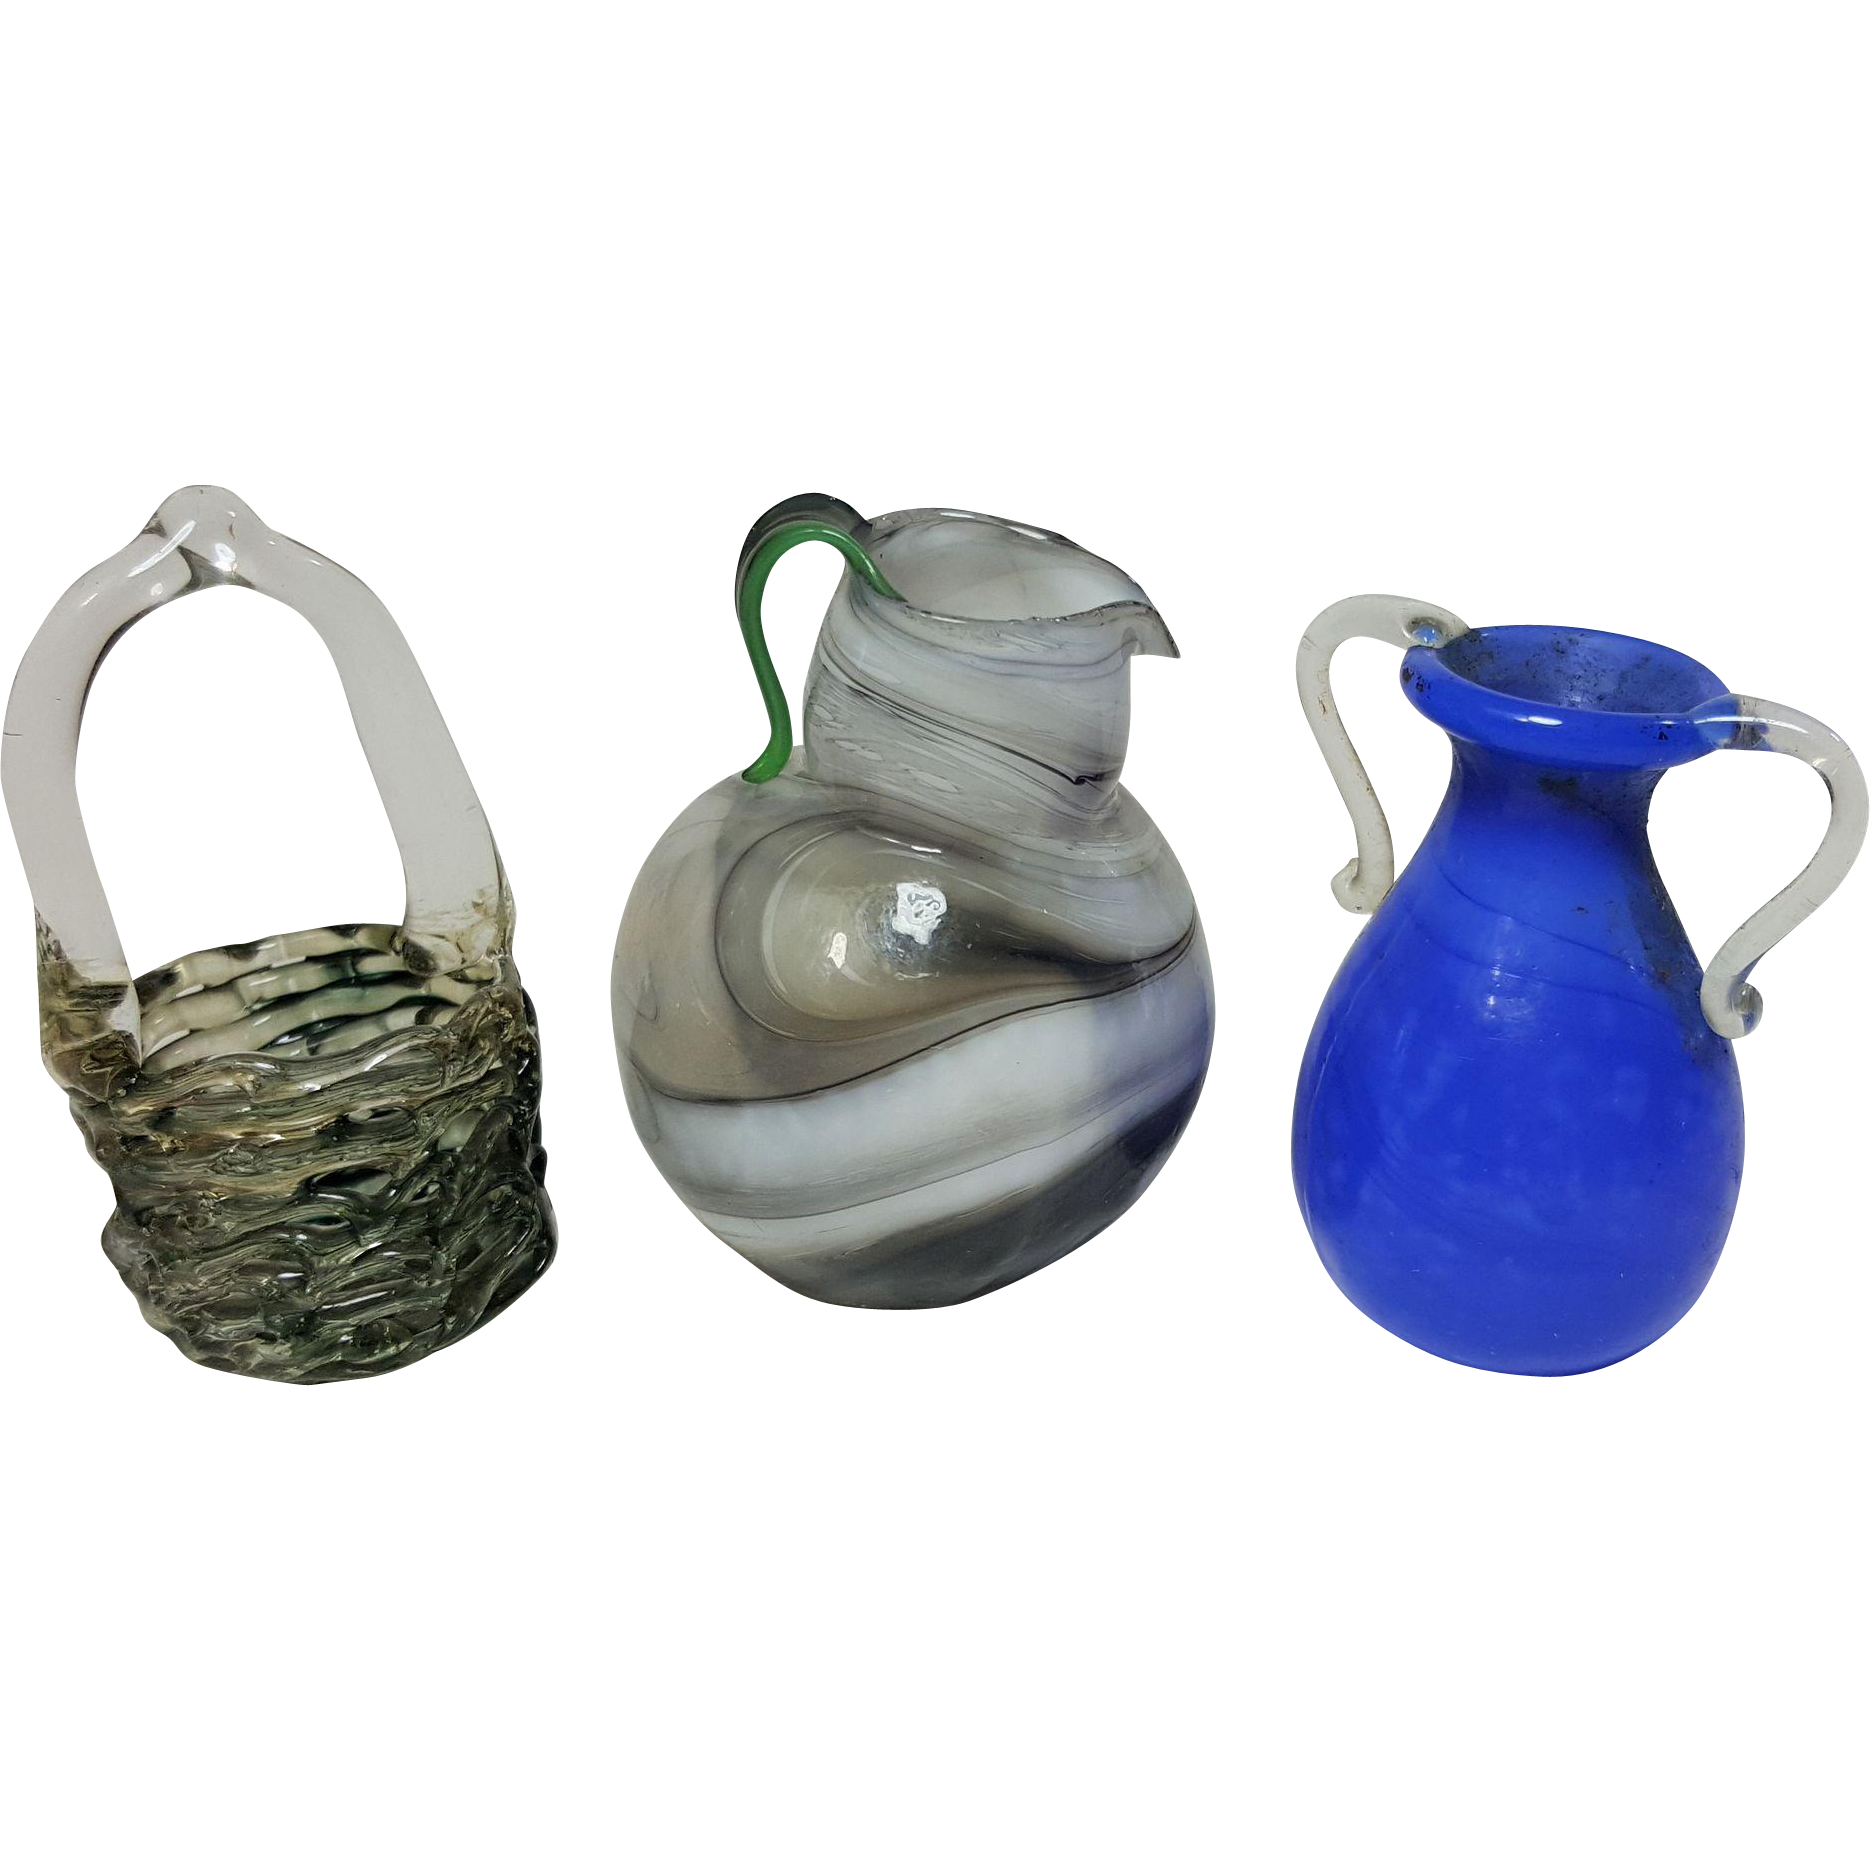 Three miniature blown glass handled pitcher vase and spun glass basket doll house accessories grey white swirl blue with clear